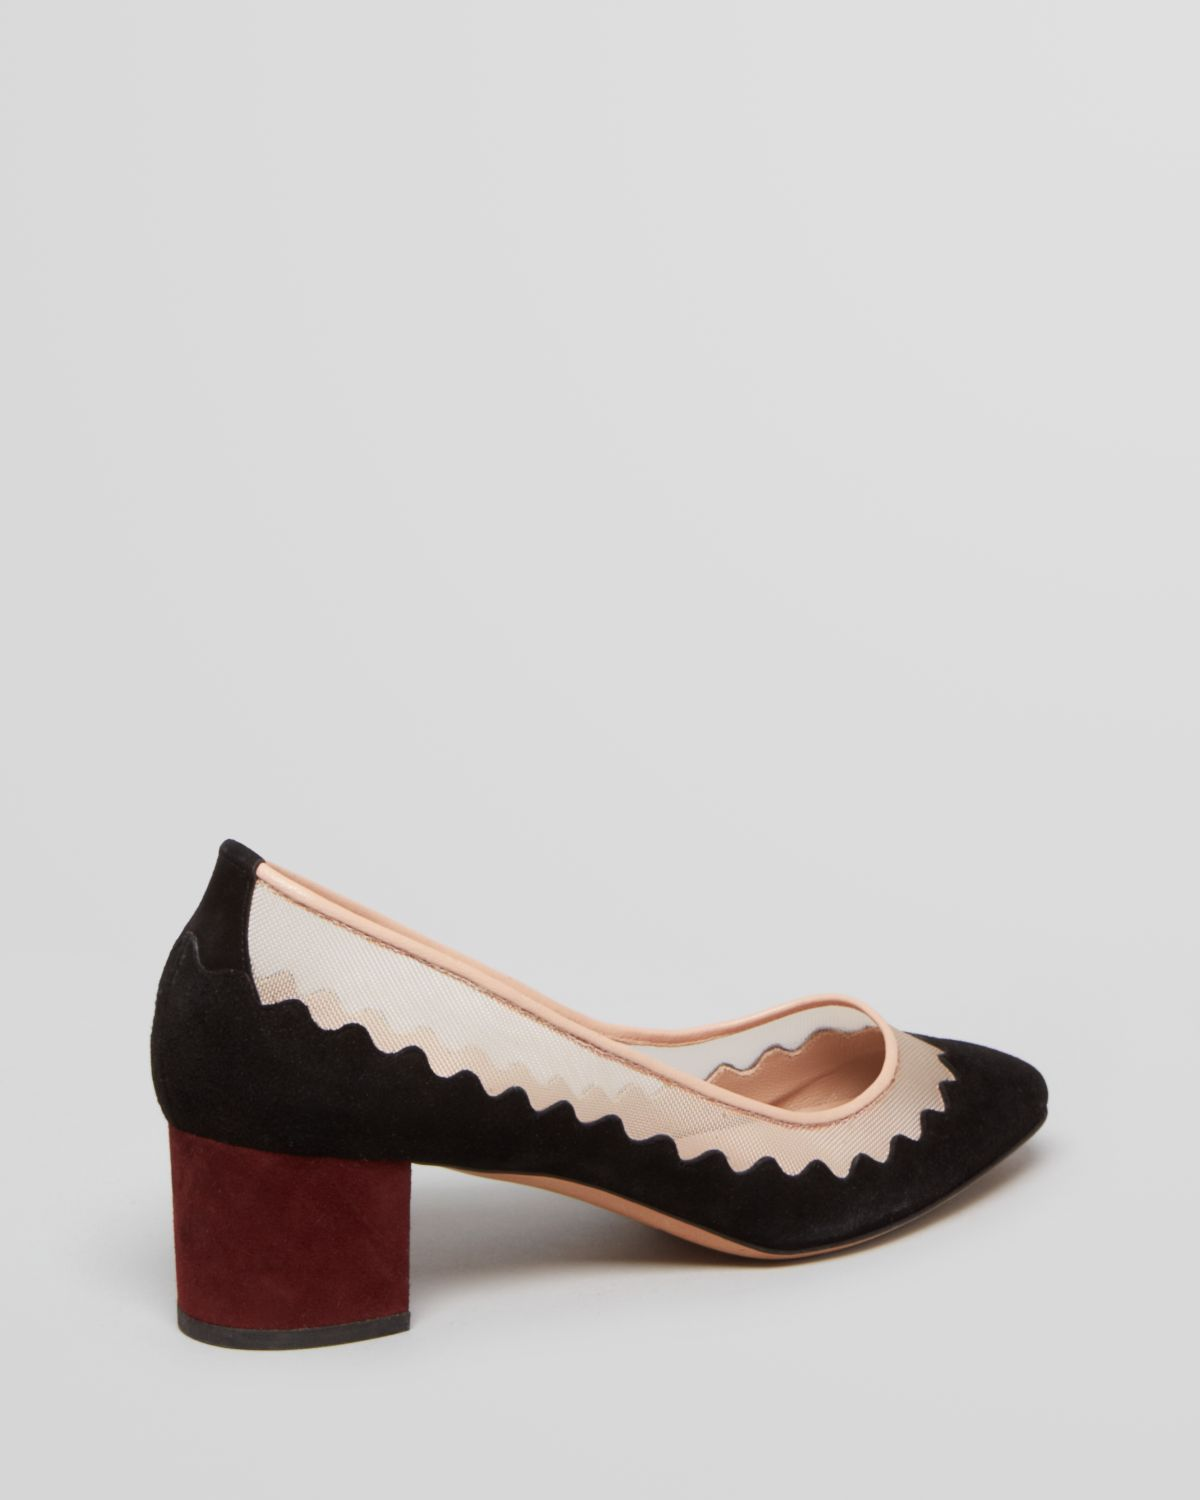 Chloé Woven Bow Pumps real sale online sale with credit card sast for sale authentic for sale 3f9bviE